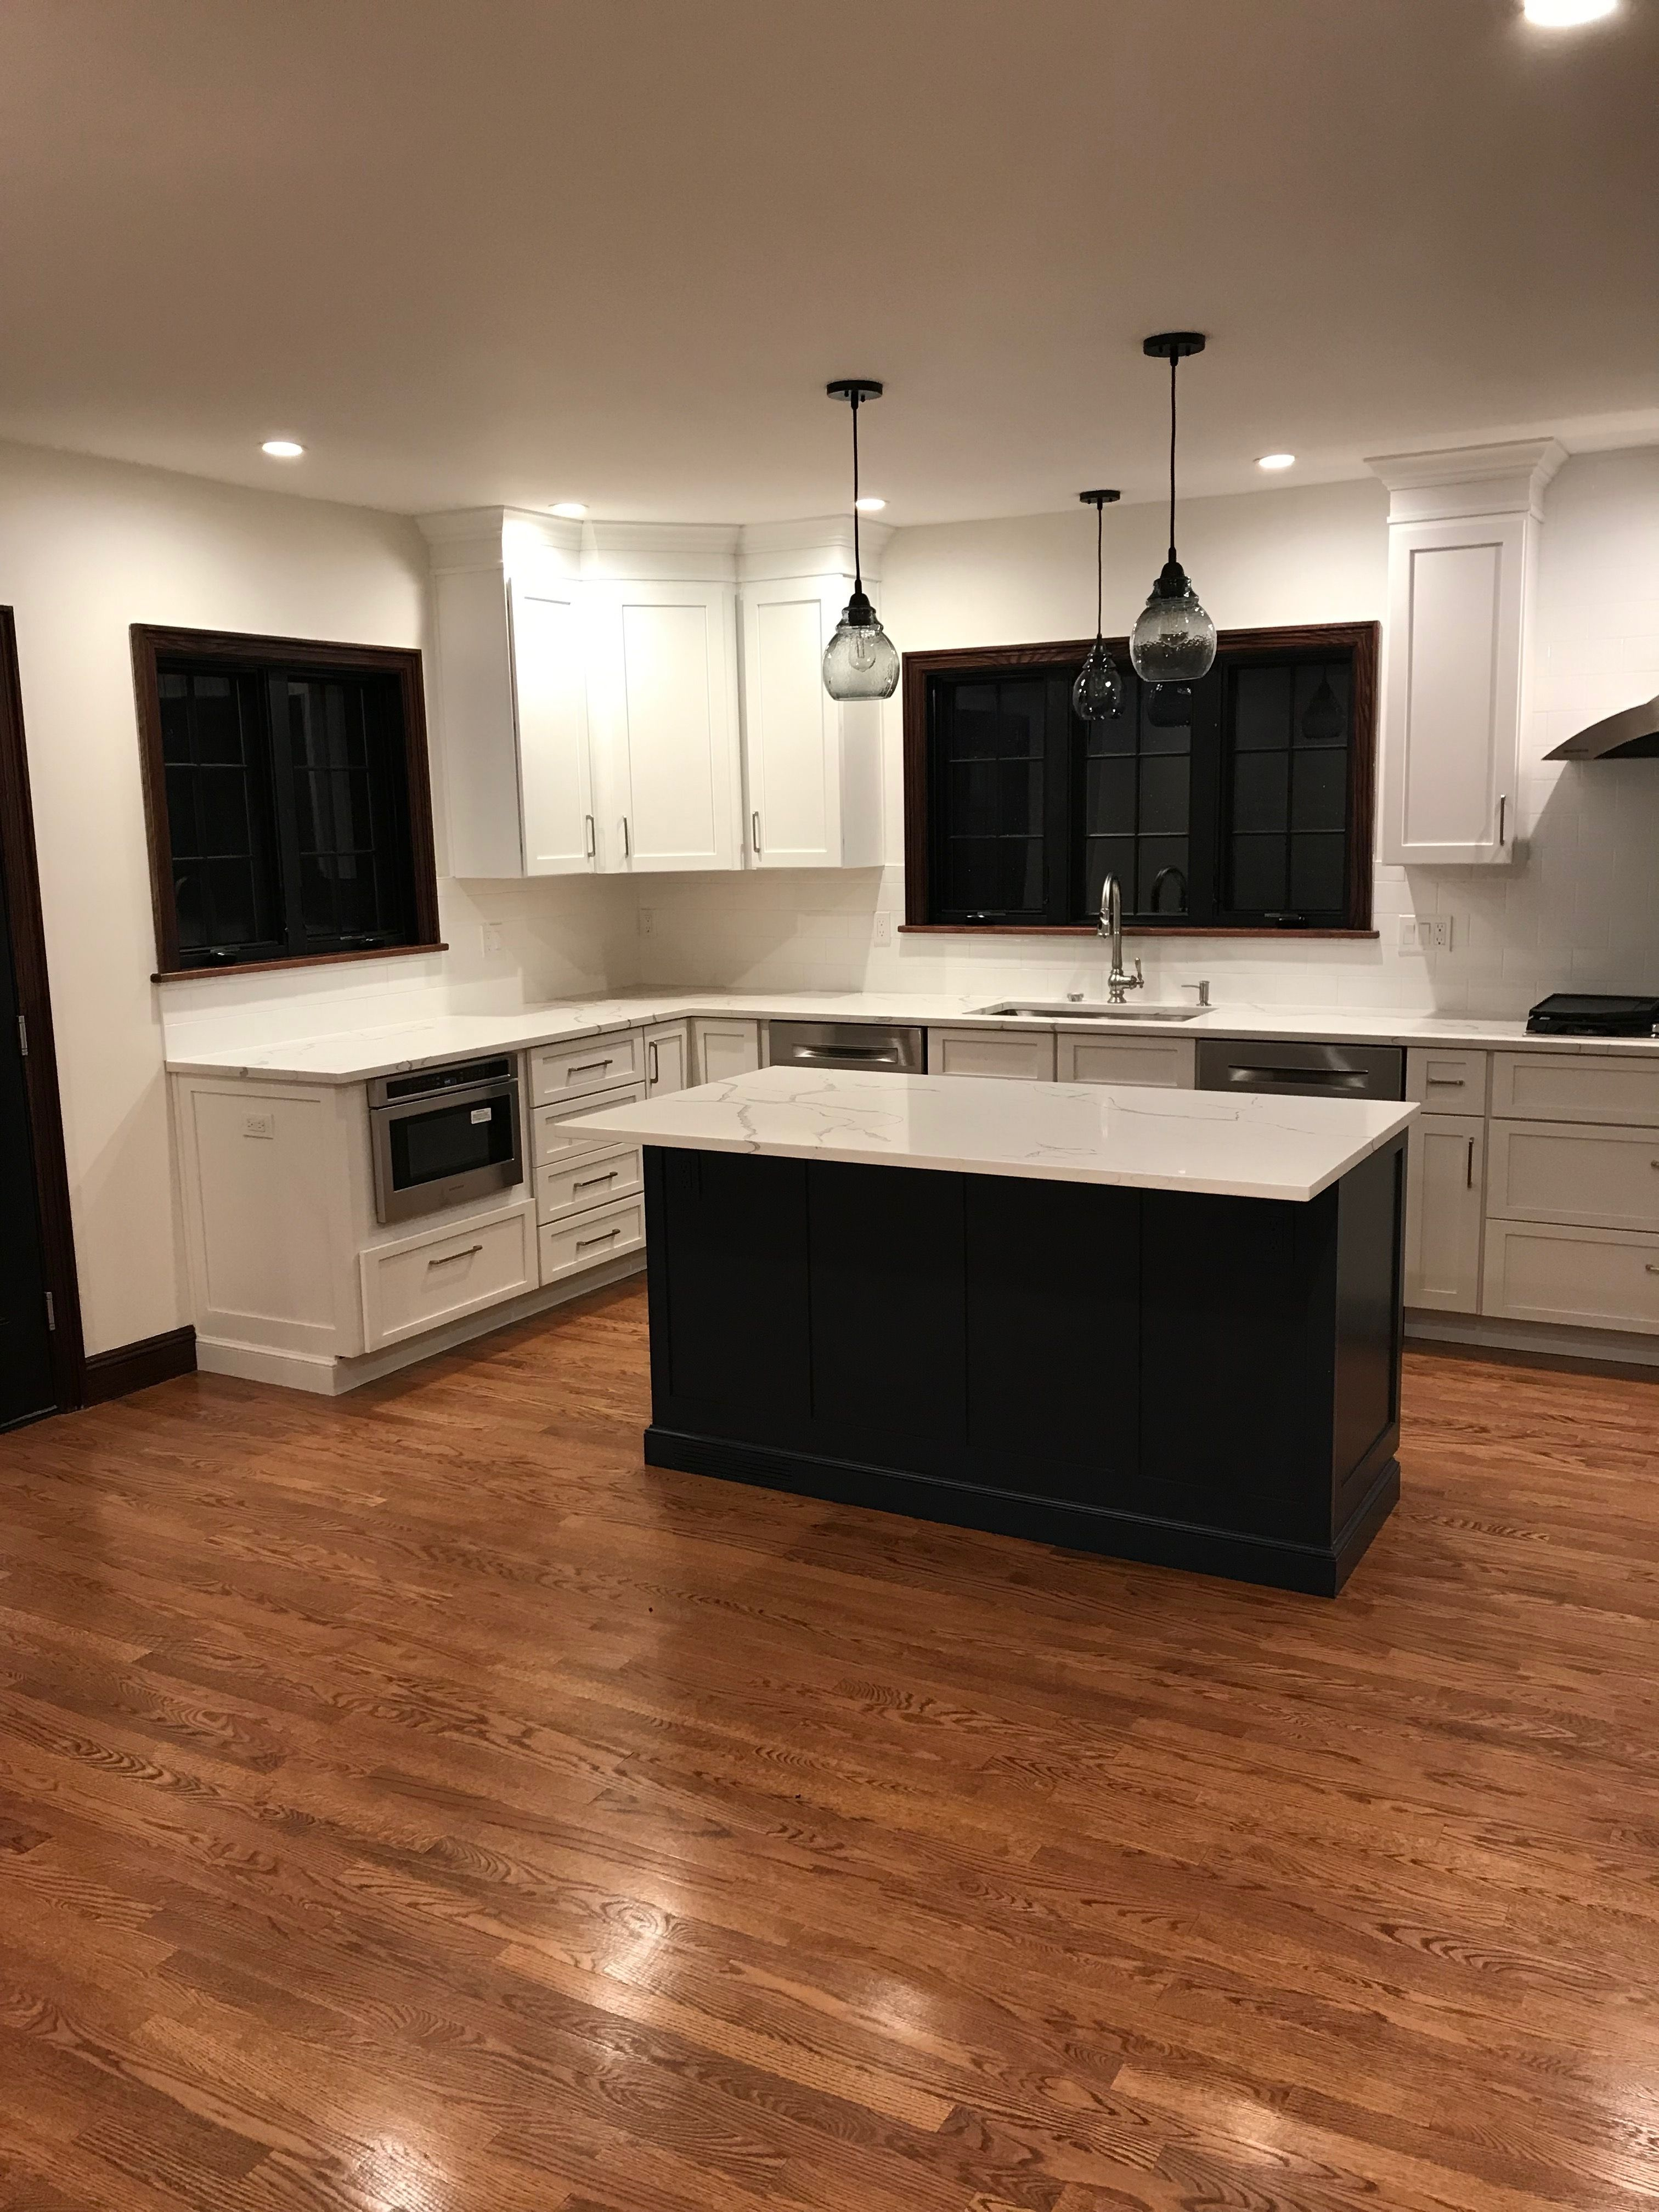 Wrapping Up This Complete Gut Renovation Just In Time For The New Year Kitchen Design Cabinetry And Stone By Us I Kitchen Renovation Kitchen Kitchen Design